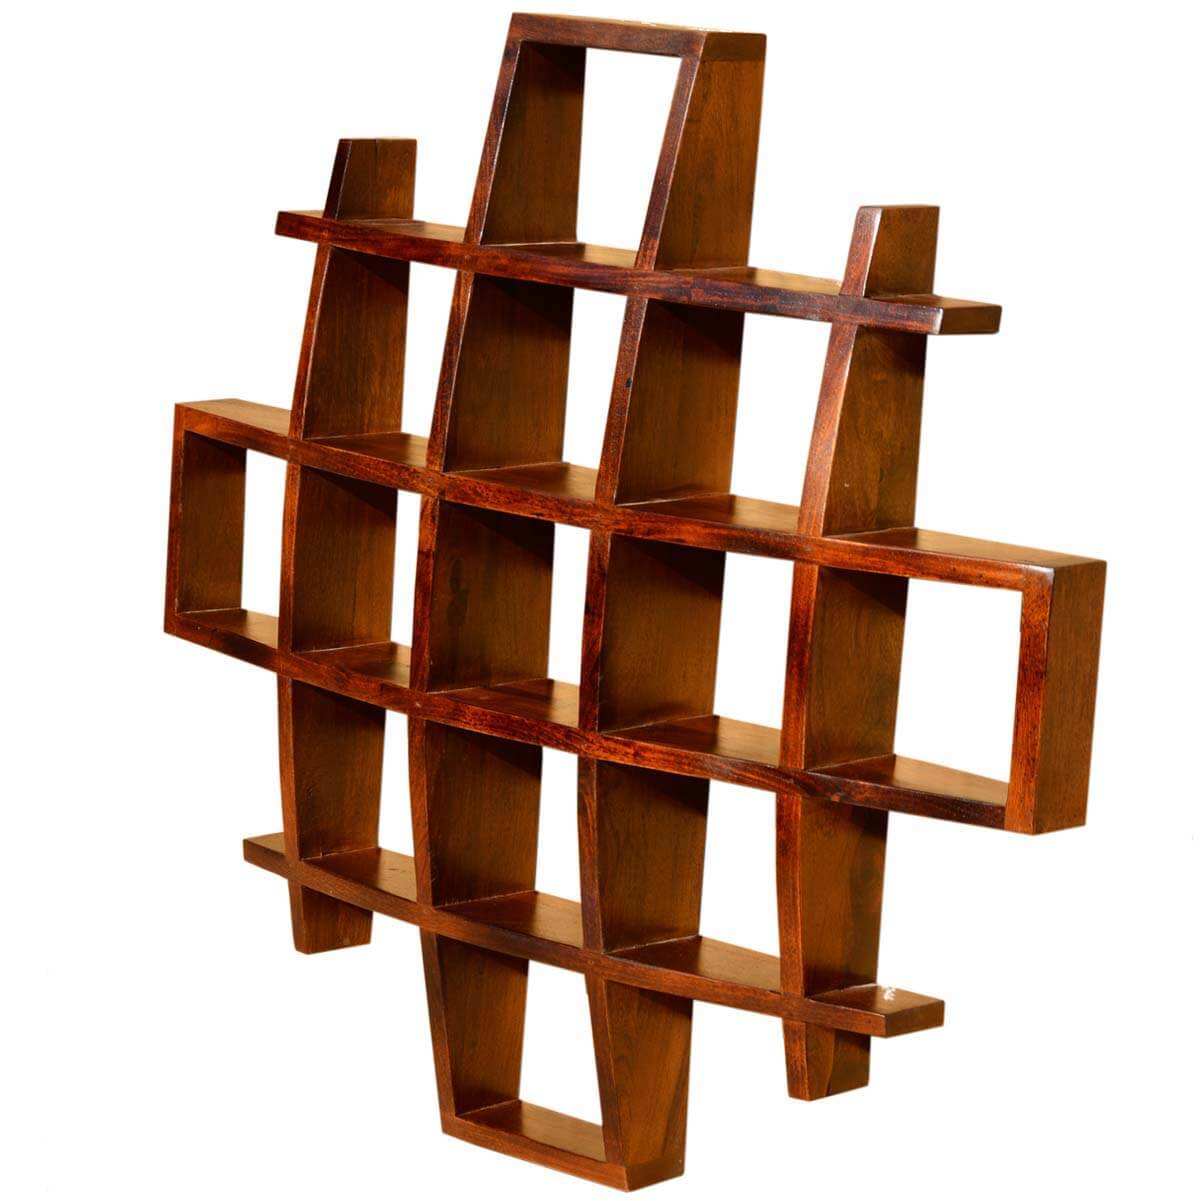 Contemporary wood display wall hanging shelves home decor for Modern decorative items for home